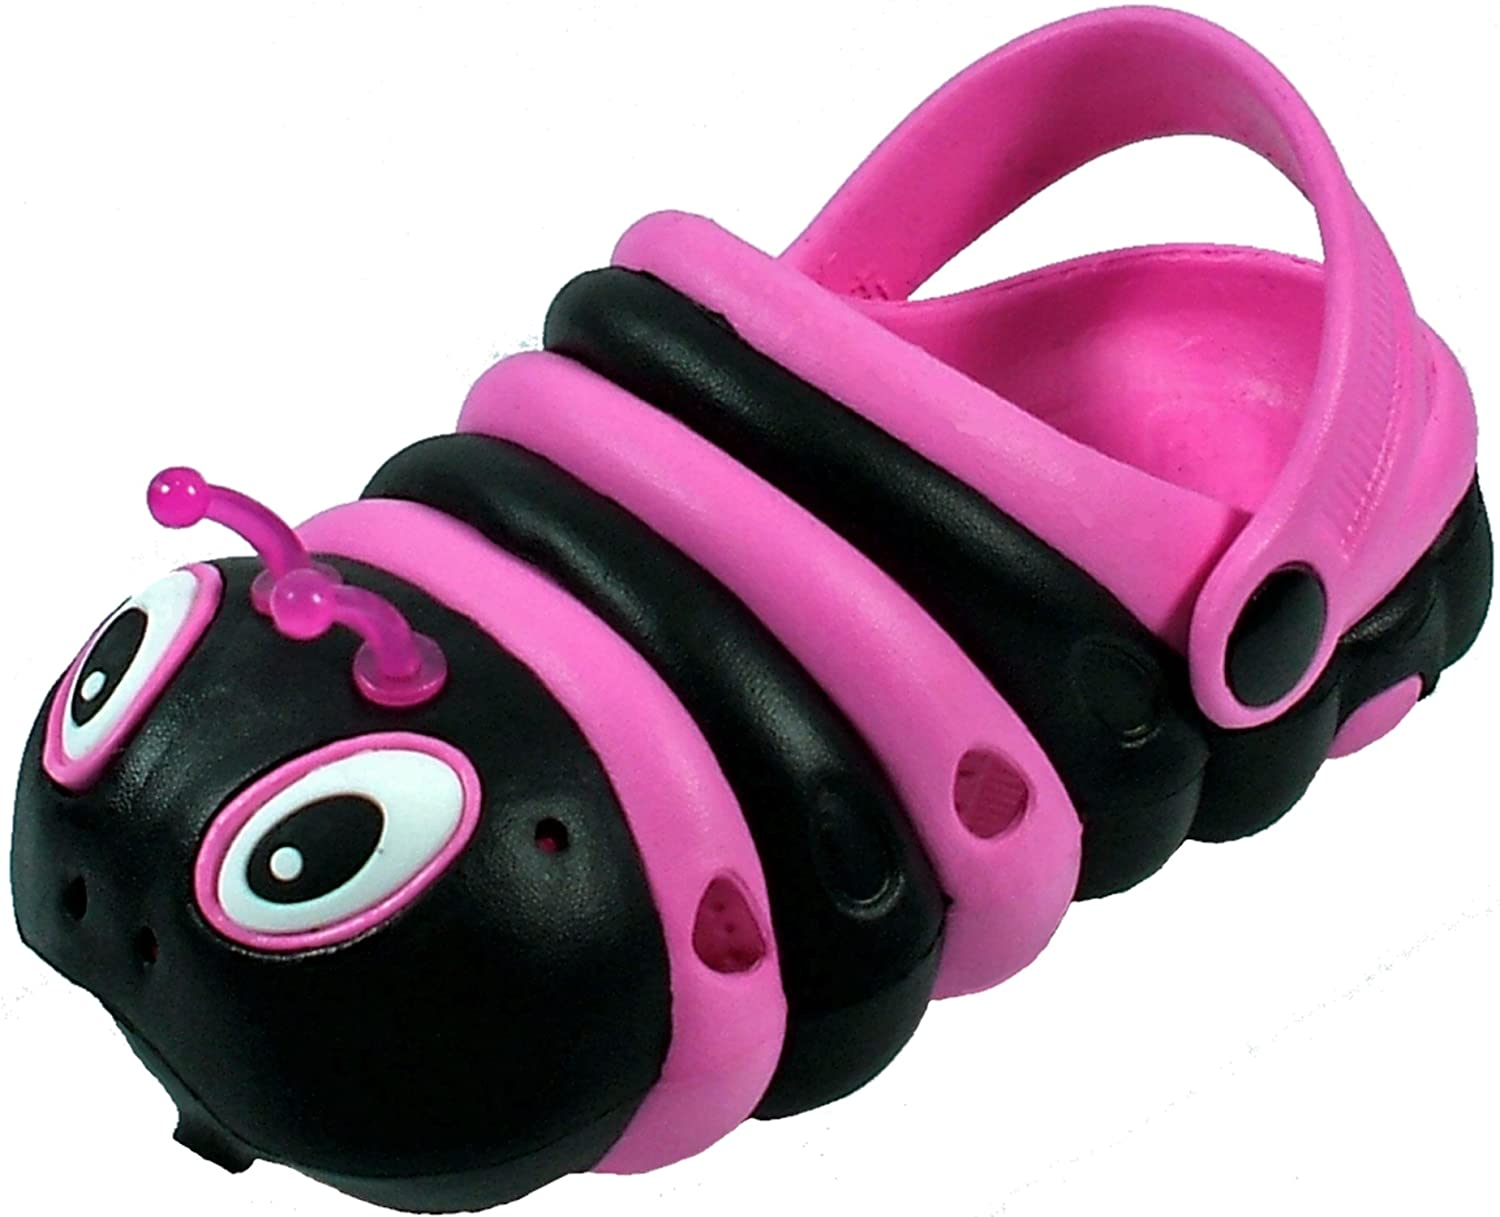 Walking Slippers for Kids Girls Boys and Toddler - Funny Comfortable Animal Designed Charm Shoes- Garden Shoes